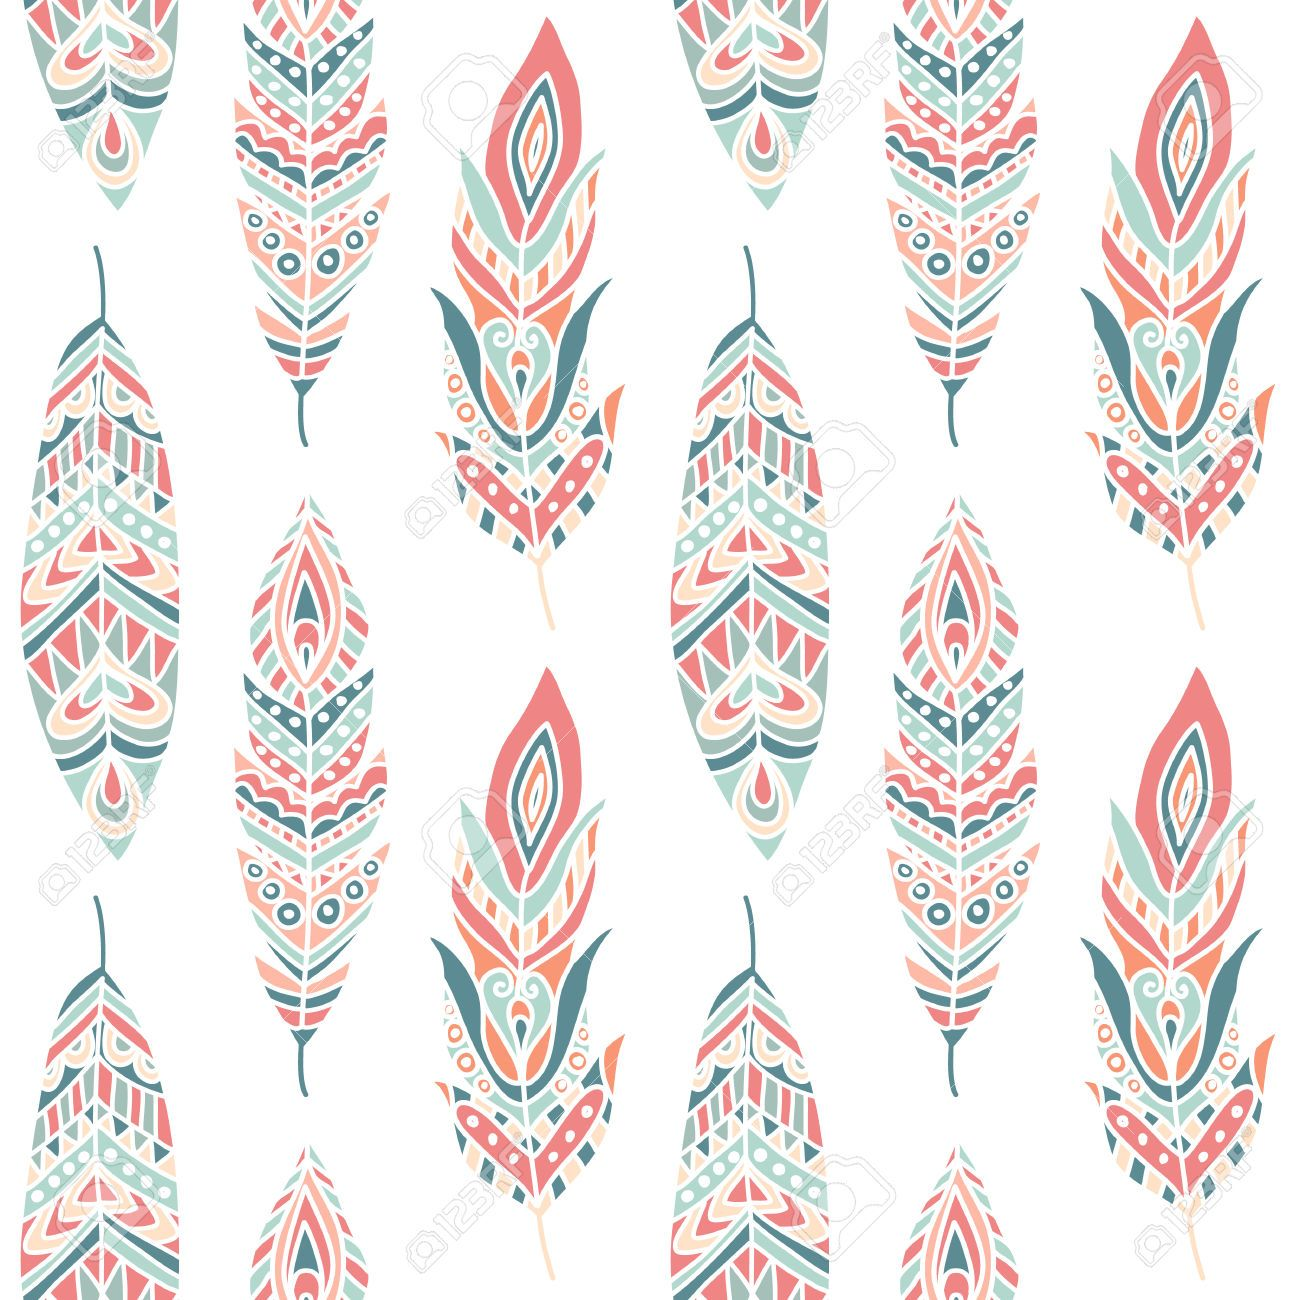 Page Background Aztec Prints Fabric Printing Hand Drawn Vector Illustrations Wallpaper Feather Pattern Ethnic Patterns Feathers